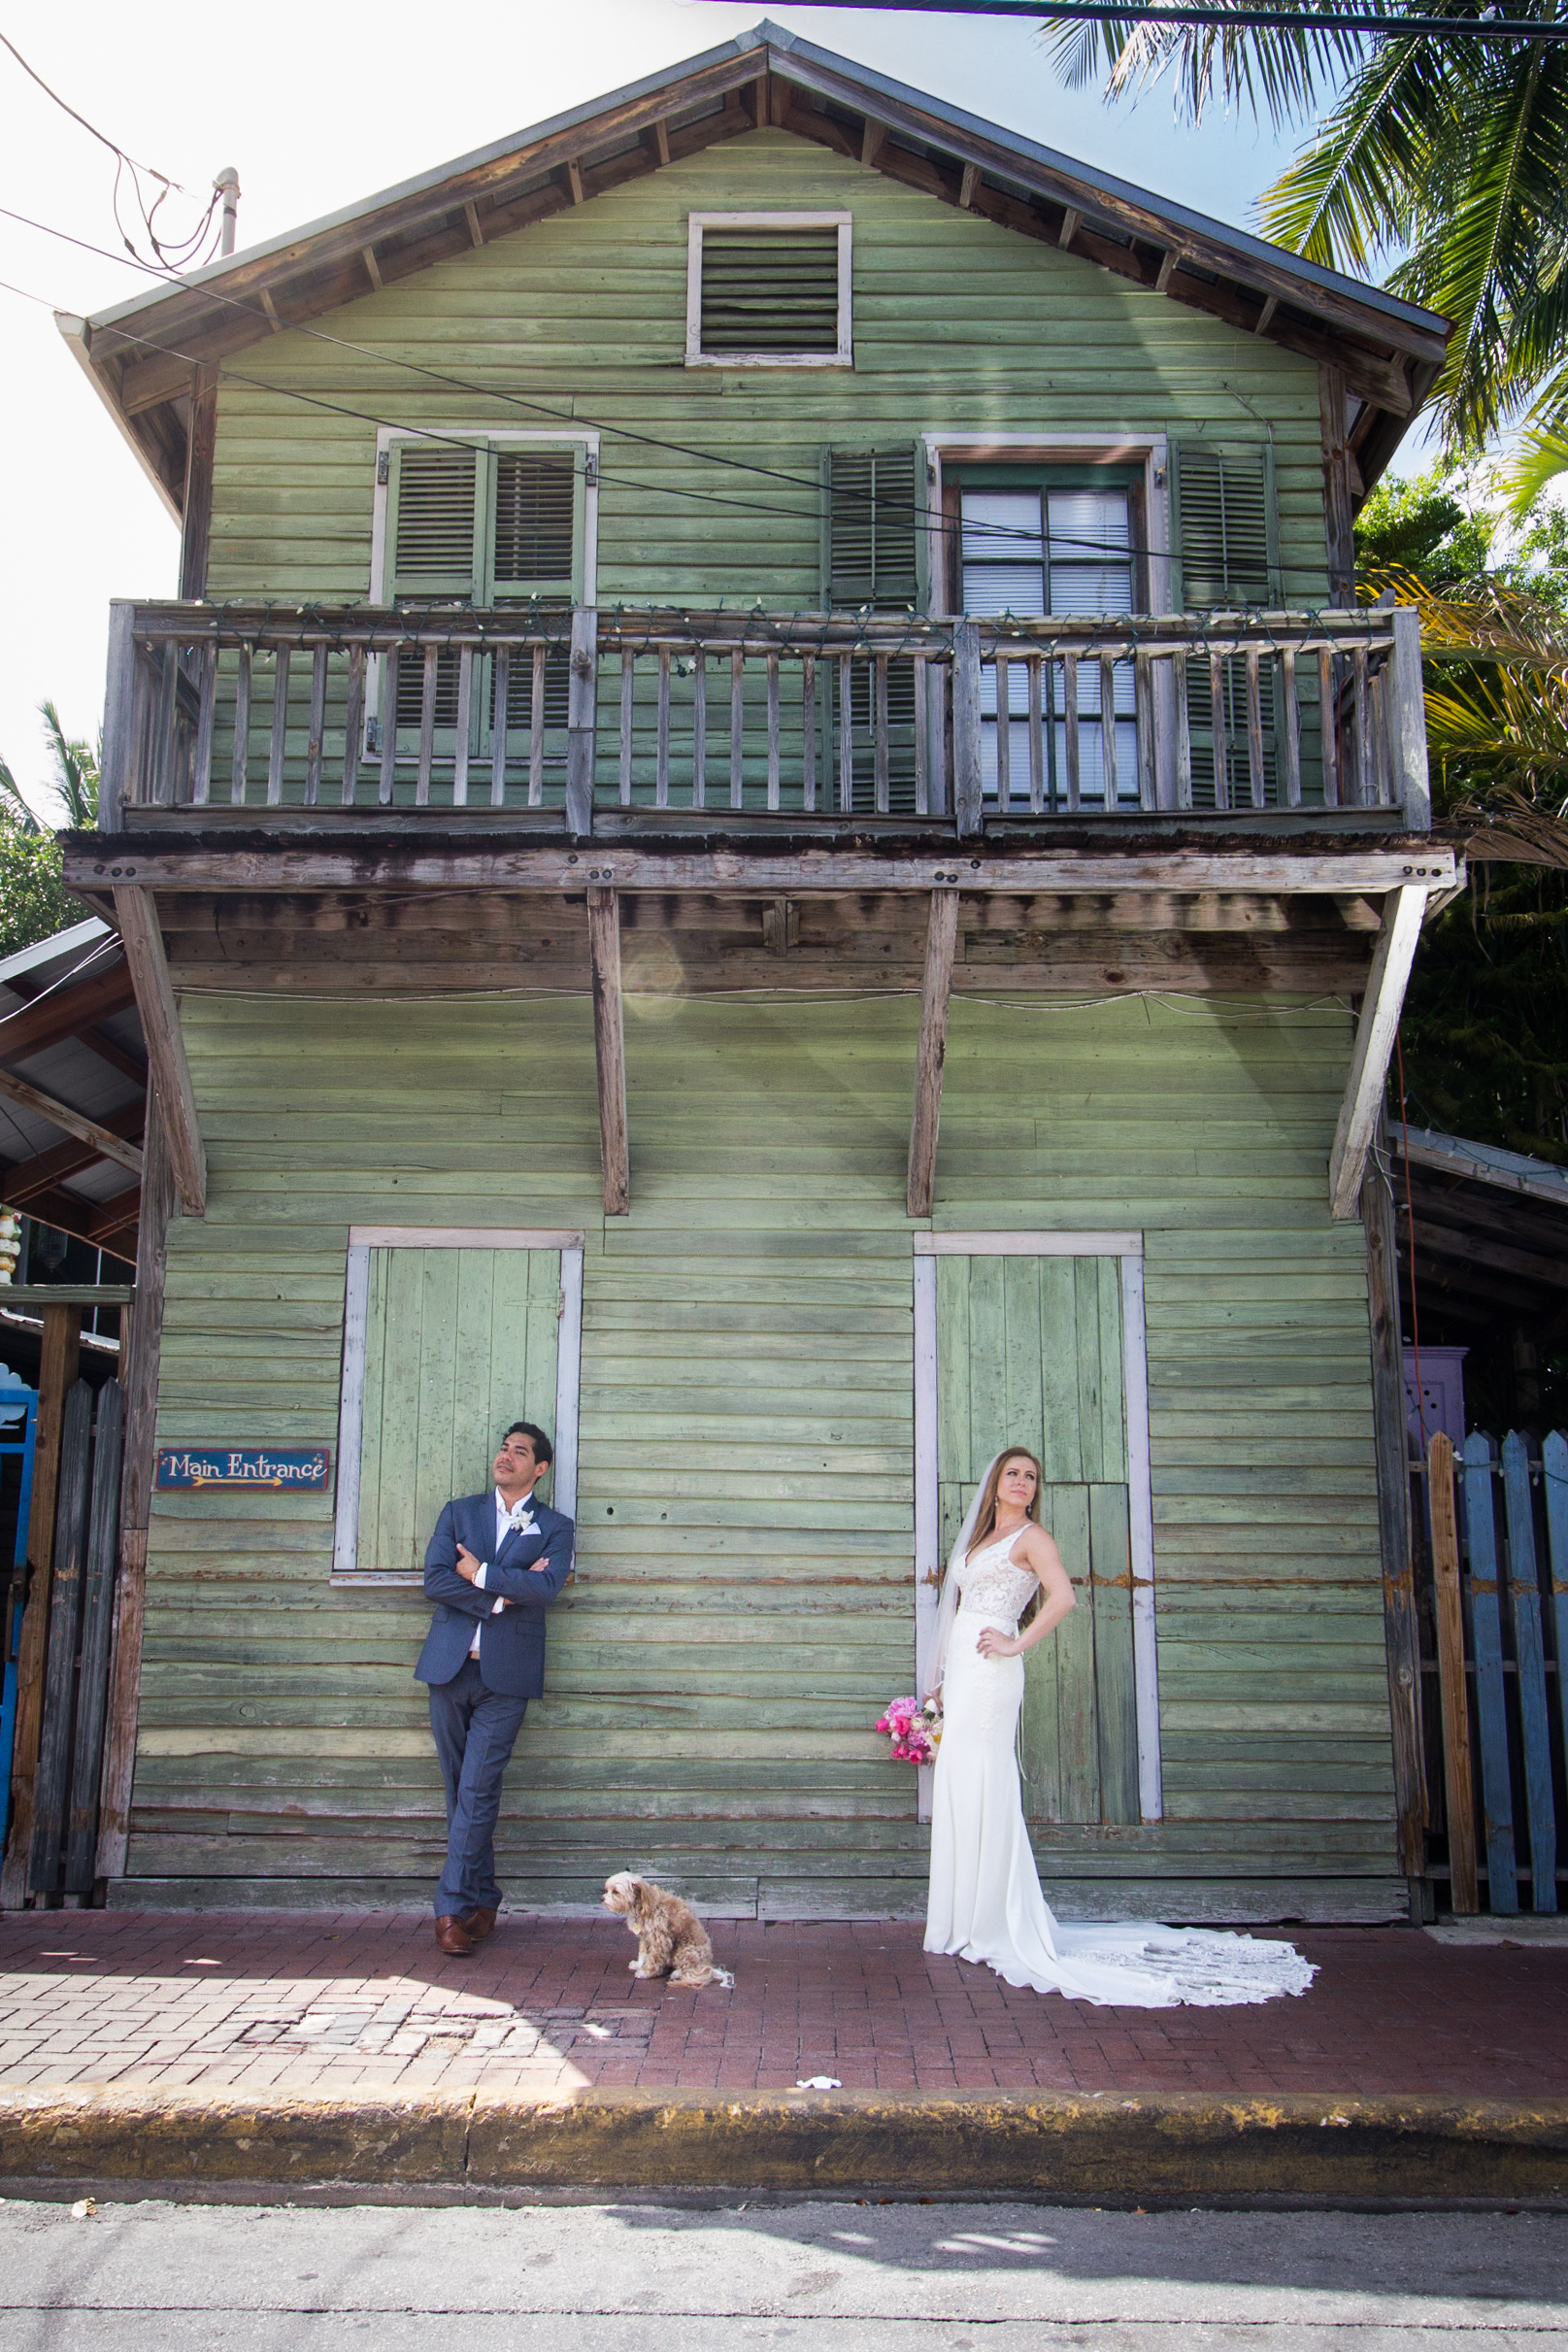 Bride-and-groom-pose-with-their-dog-in-bahama-village-key-west-on-wedding-day.jpg